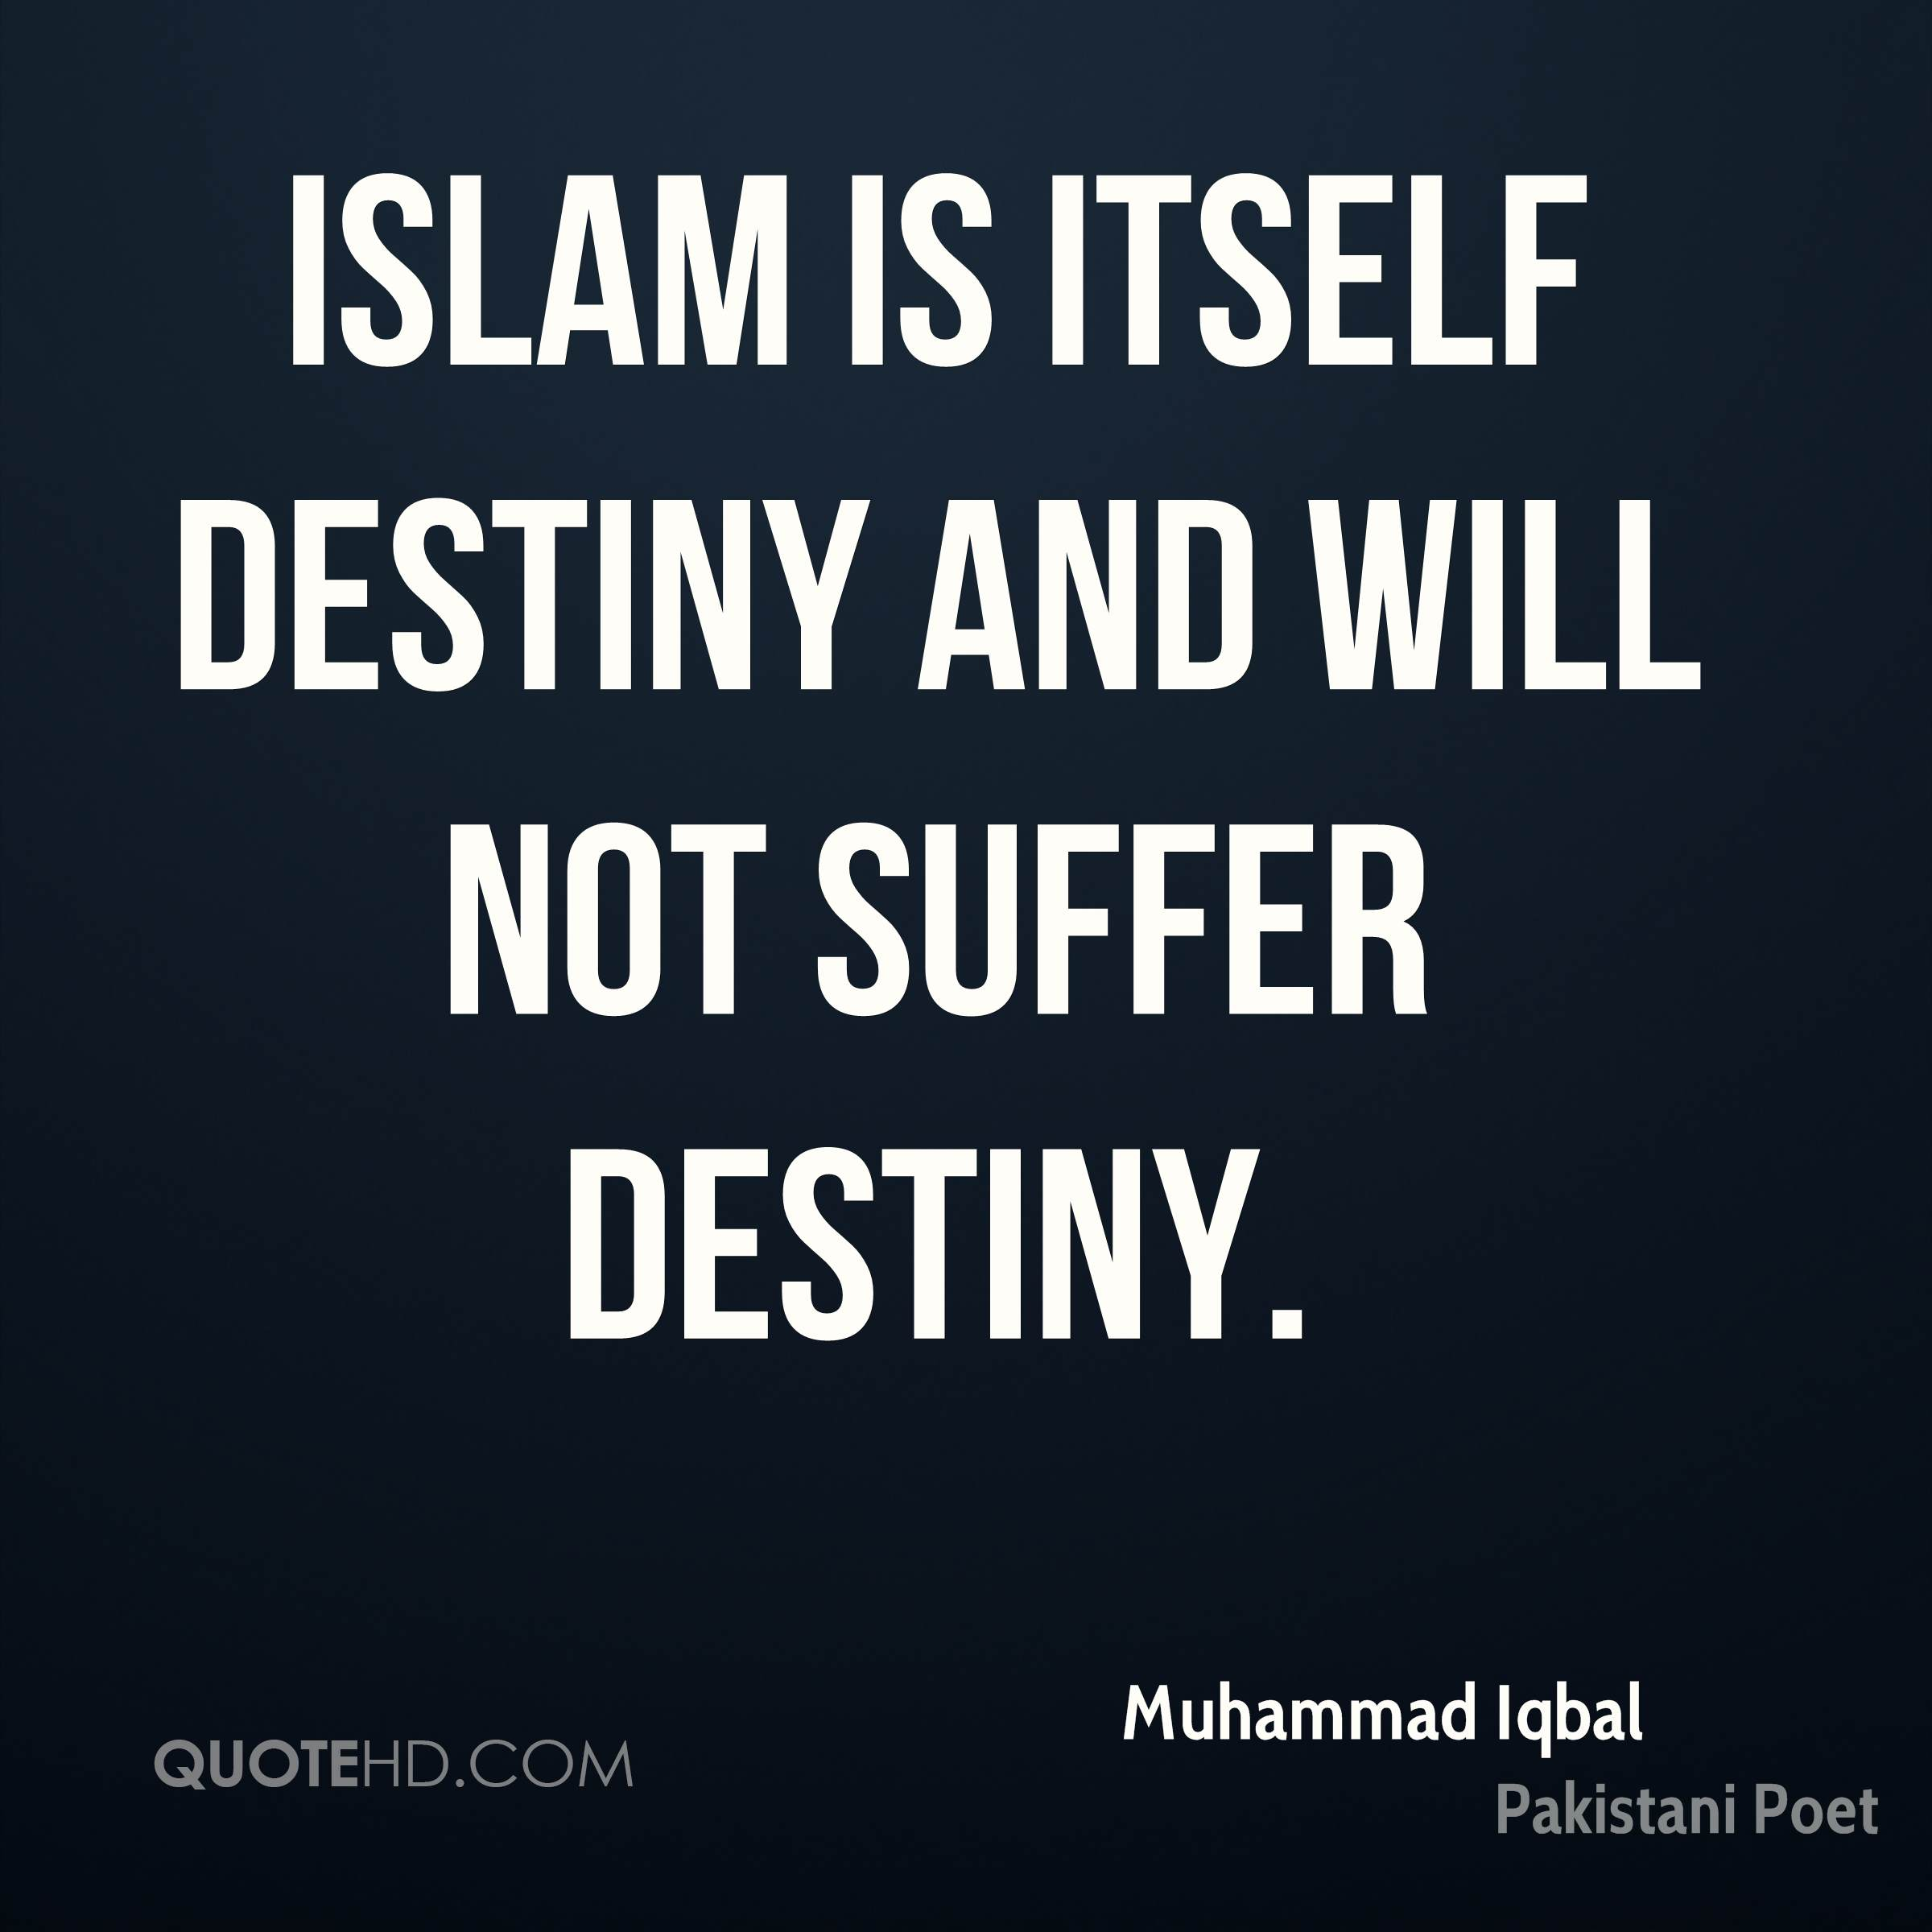 Islam is itself destiny and will not suffer destiny.